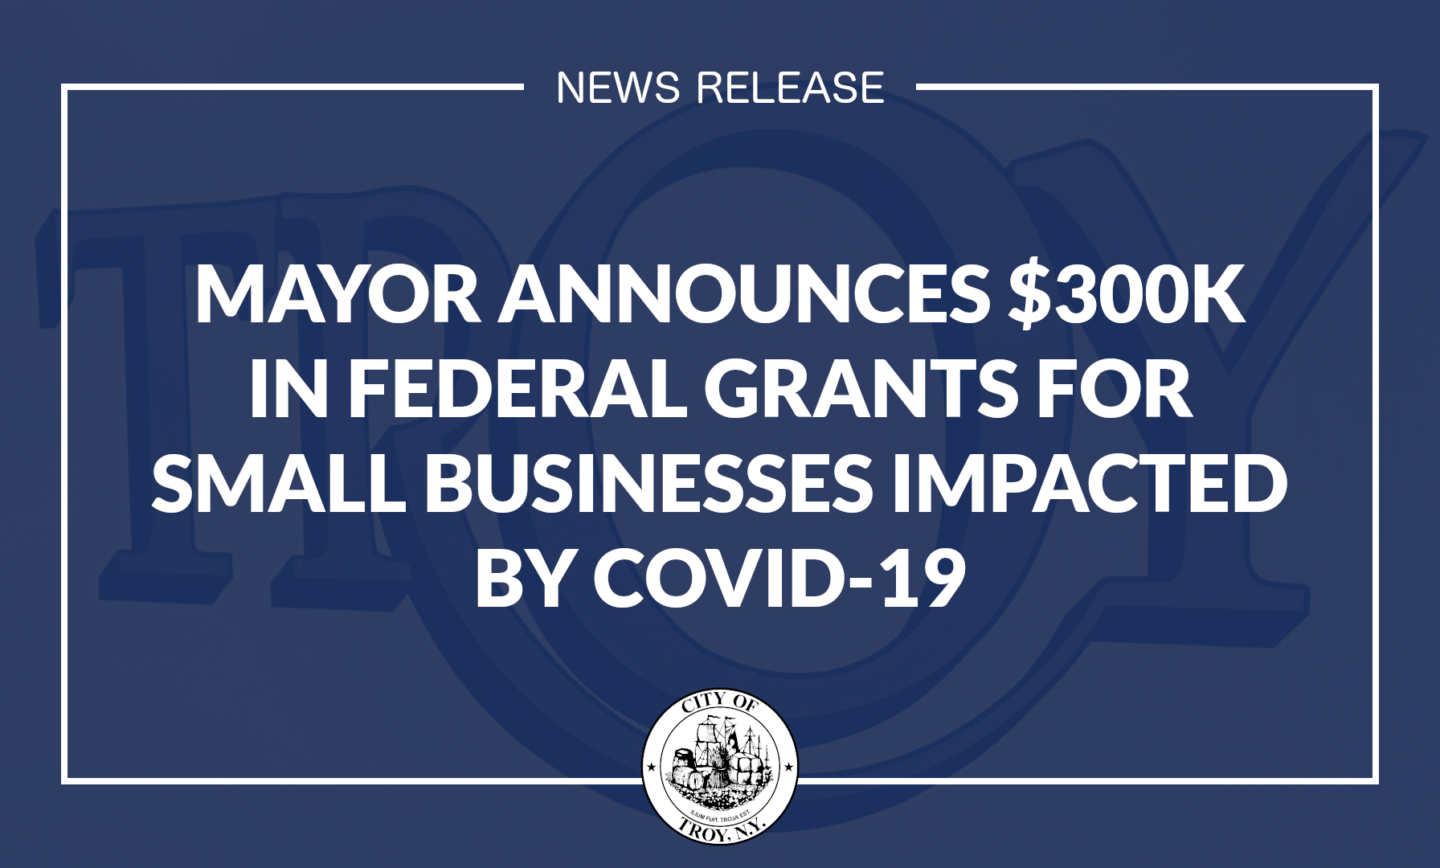 Mayor Madden Announces $300K in Federal Grants for Small Businesses Impacted by Covid-19